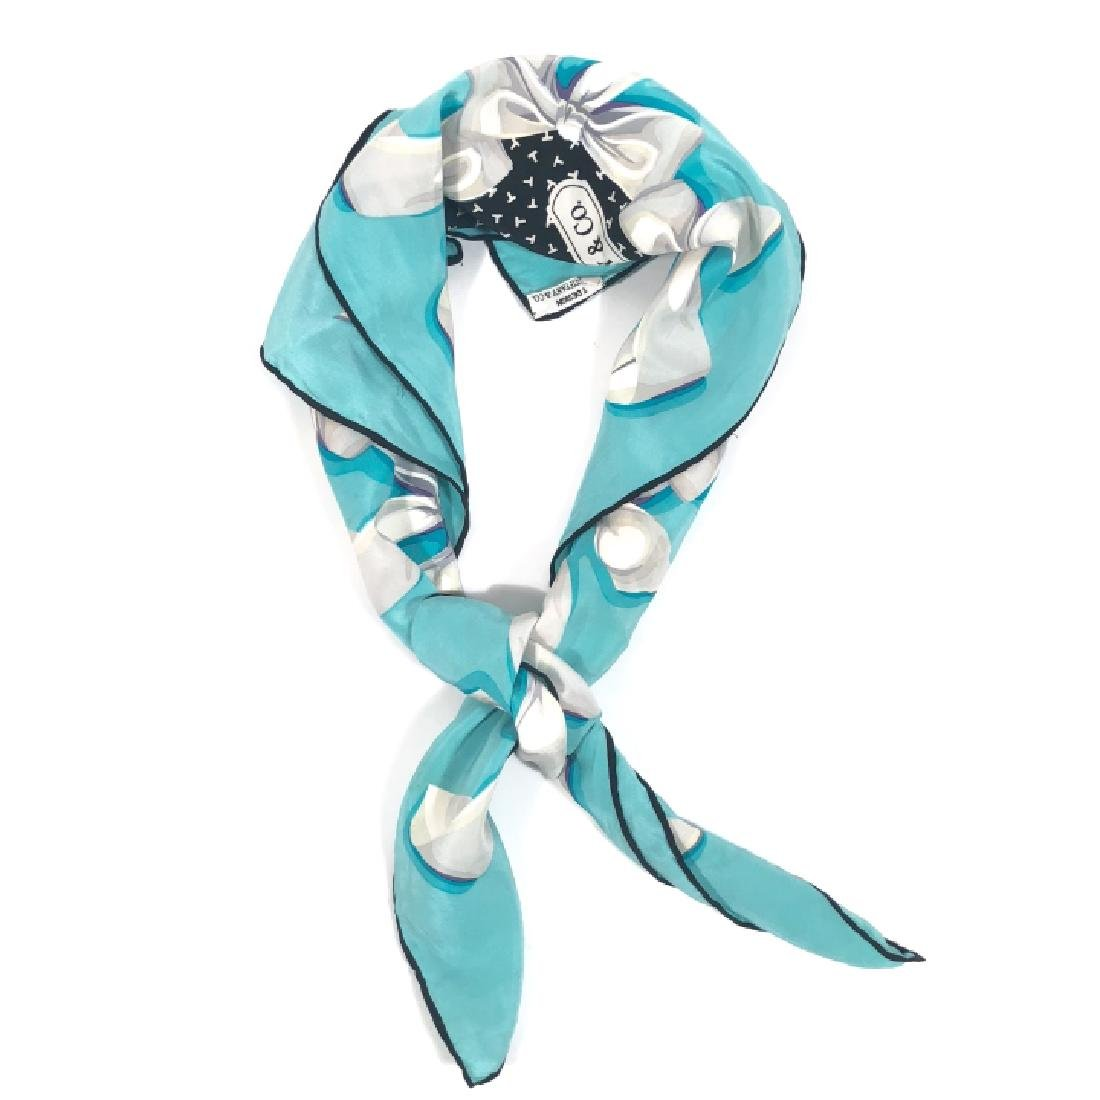 Vintage Tiffany & Co T Design with Bows Silk Scarf